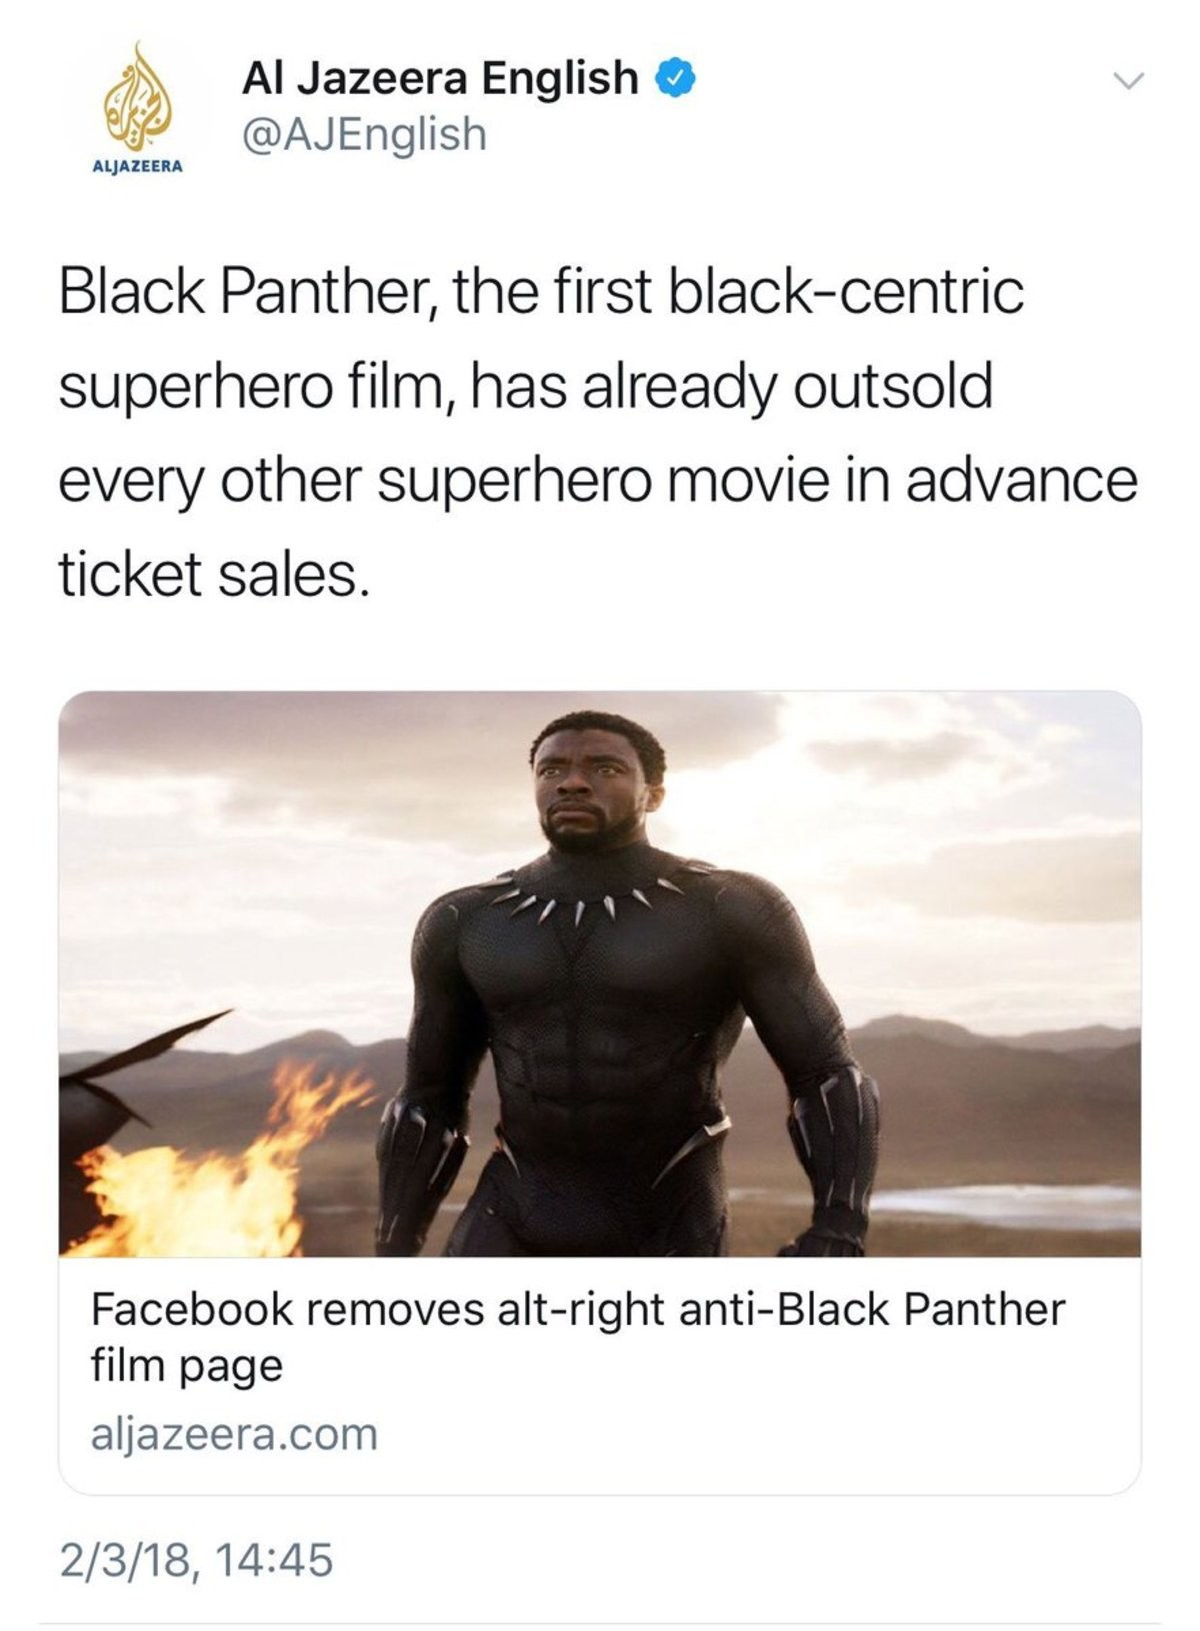 Really?. join list: PoliticsAndStuff (745 subs)Mention History. Black Panther, the first superhero film, has already outsold ticket sales. Cid Facebook removes